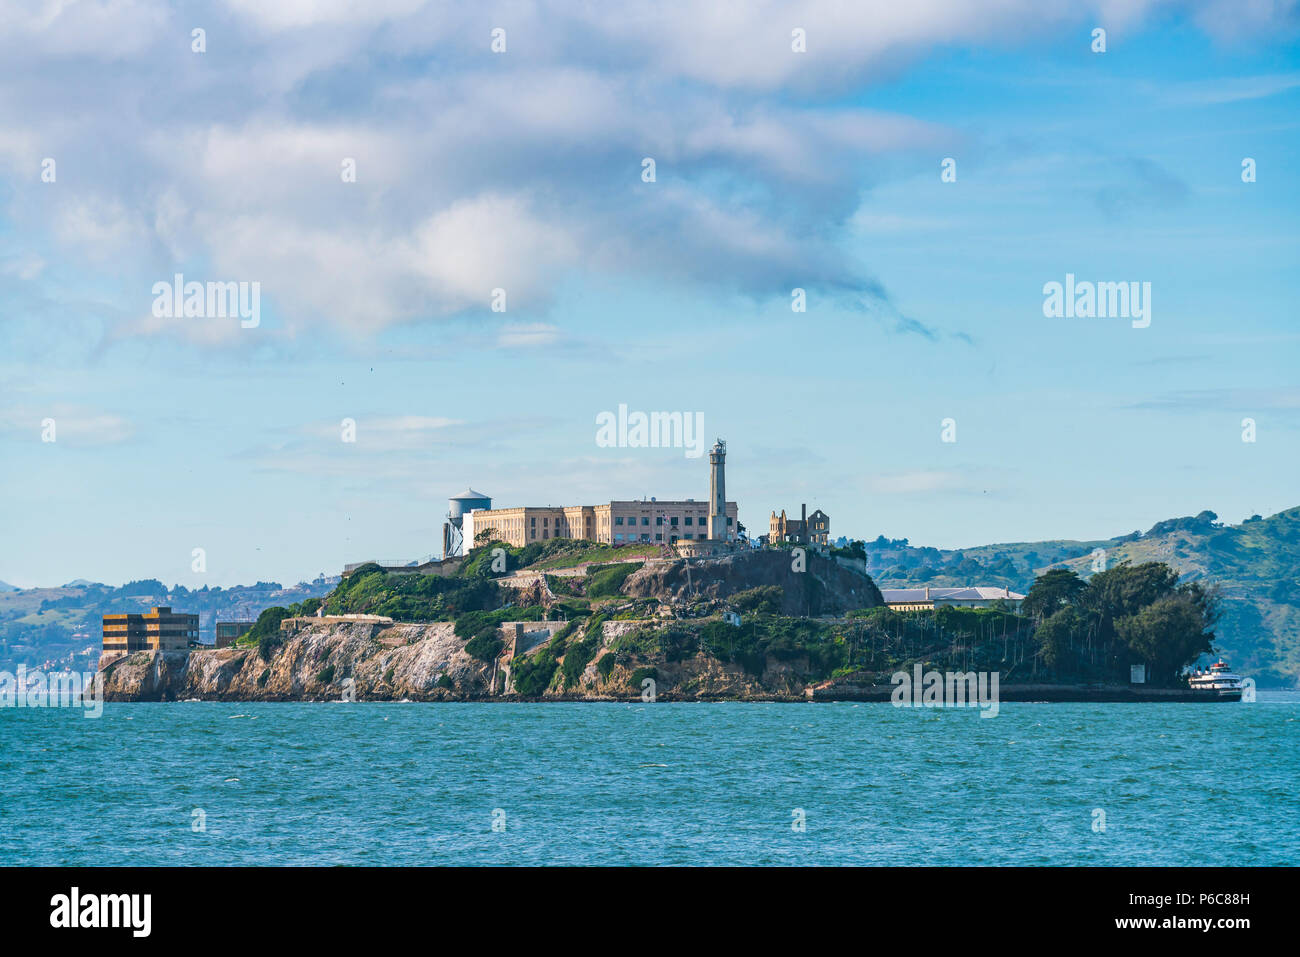 Alcatraz,san francisco,usa.2016.04.20: Alcatraz island on sunny day in summer season. - Stock Image